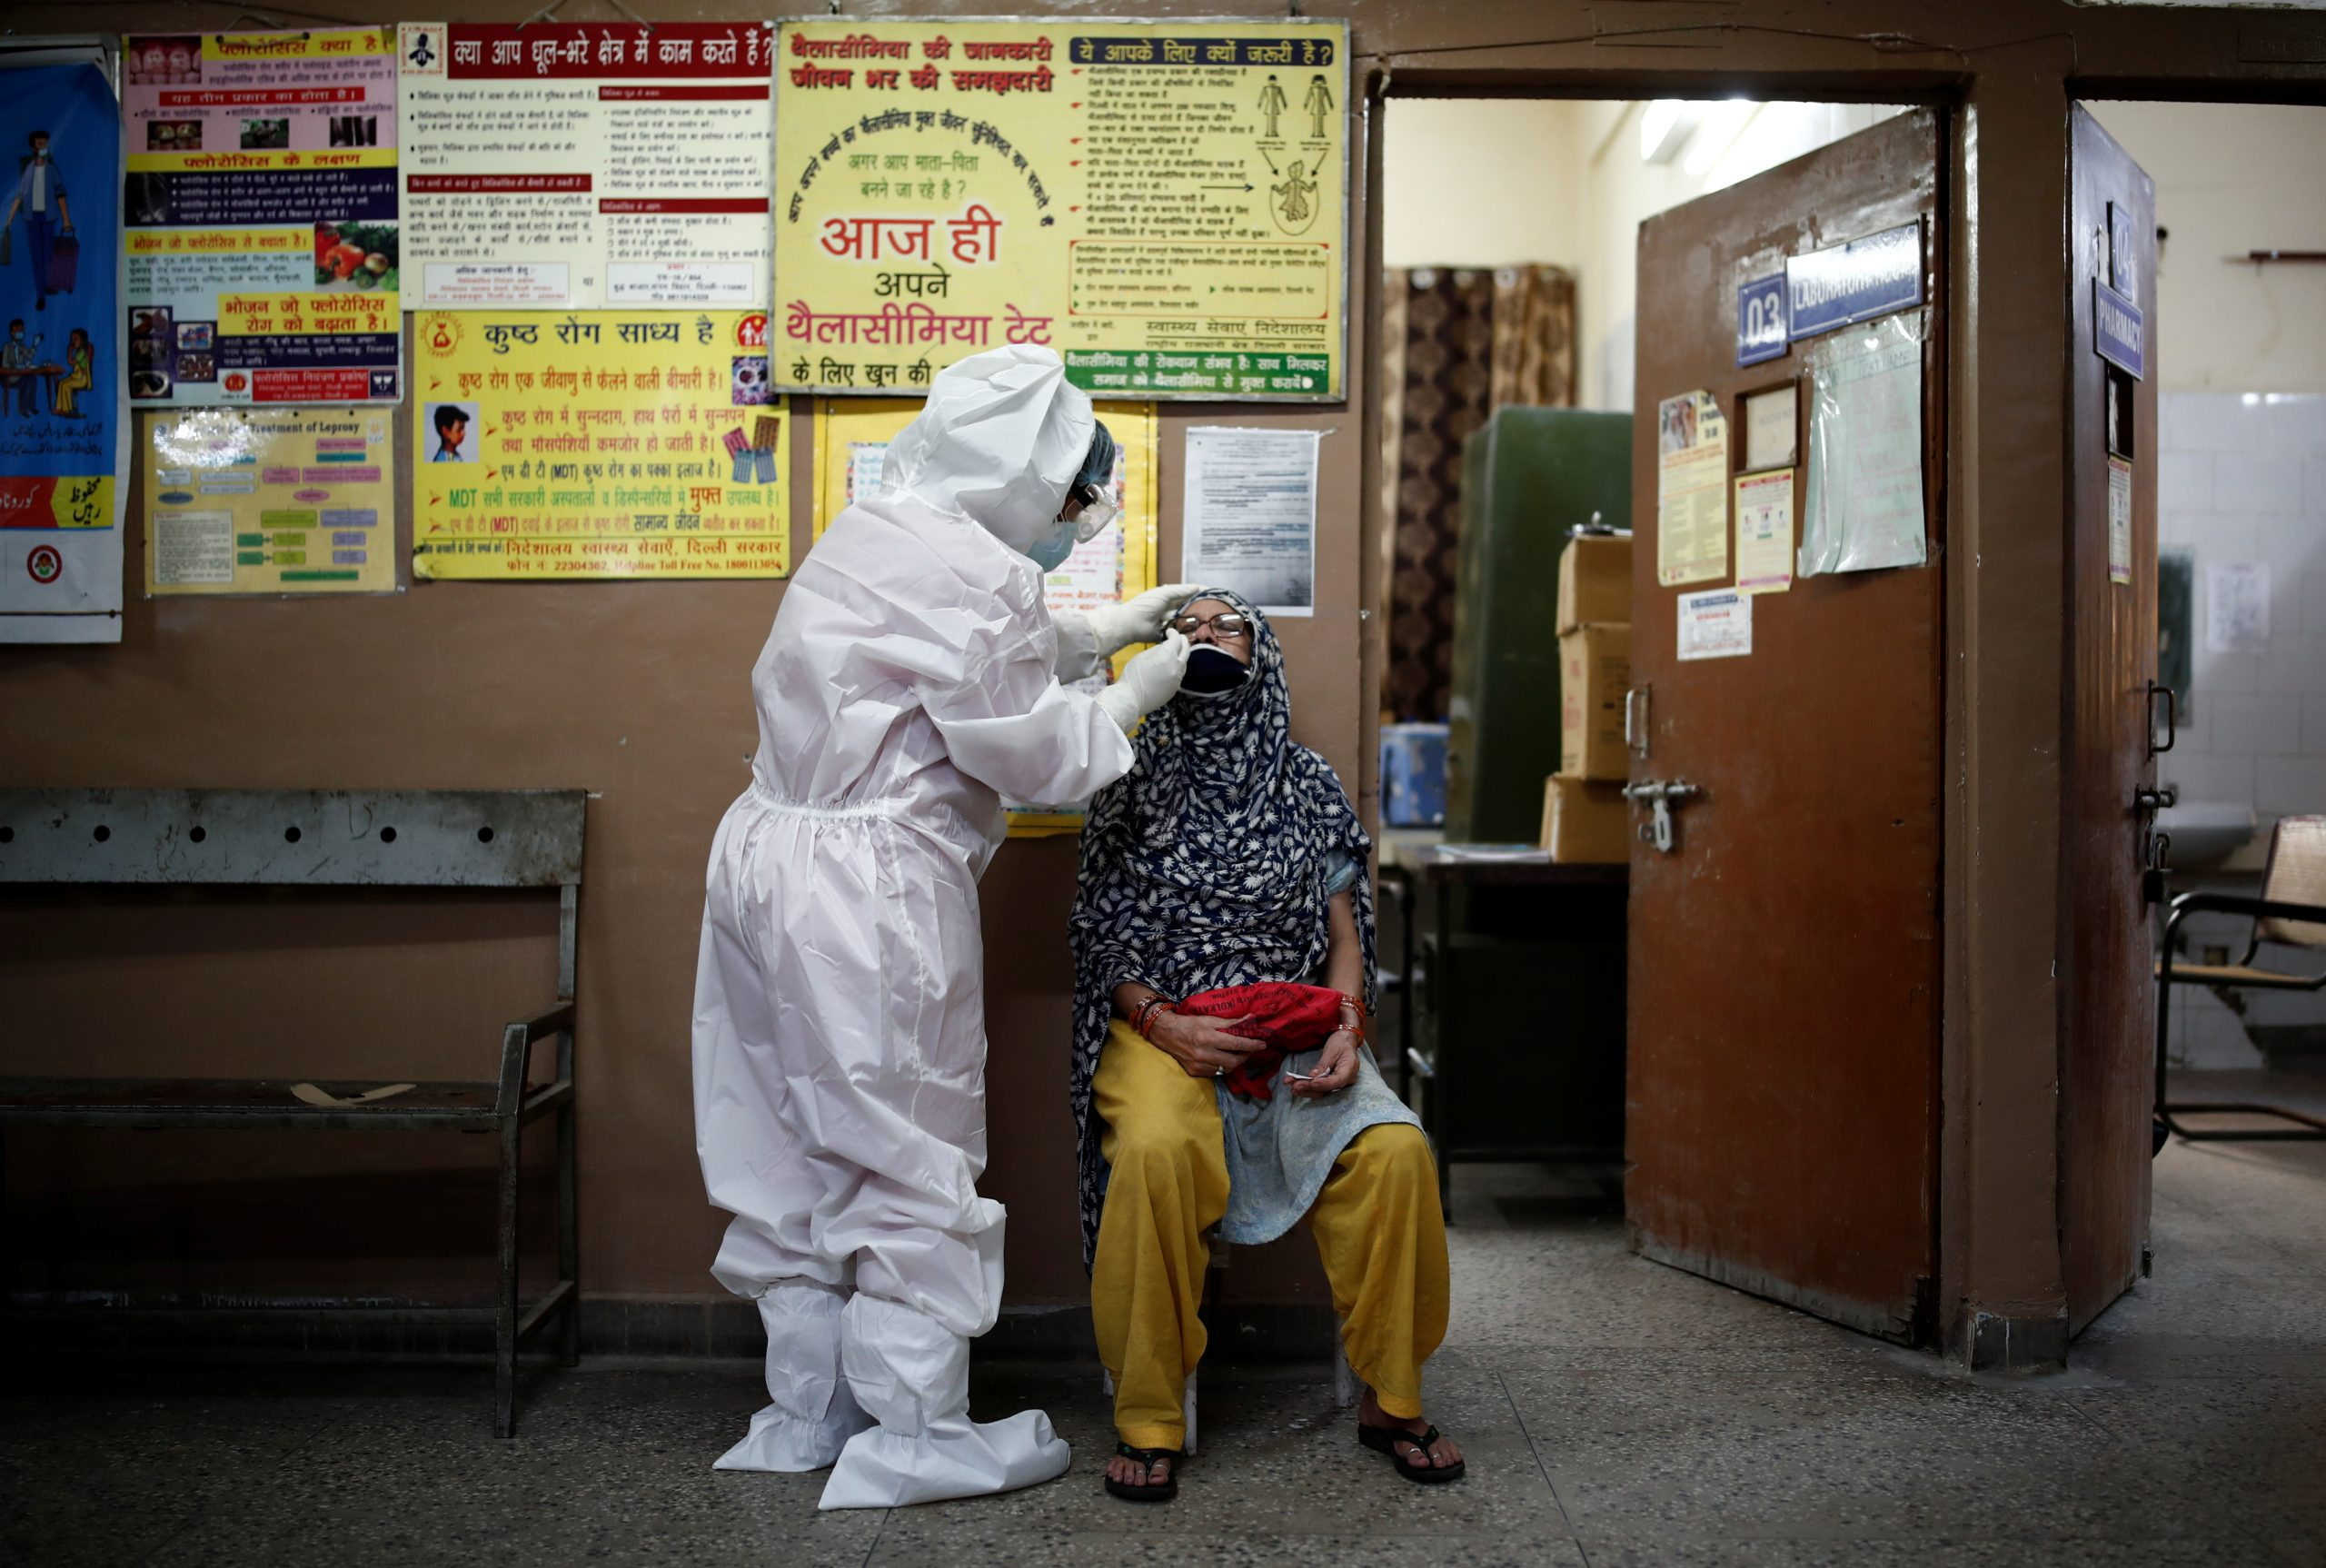 A health worker in personal protective equipment (PPE) collects a sample using a swab from a person at a local health centre to conduct tests for the coronavirus disease (COVID-19) in New Delhi, India August 7, 2020. REUTERS/Adnan Abidi